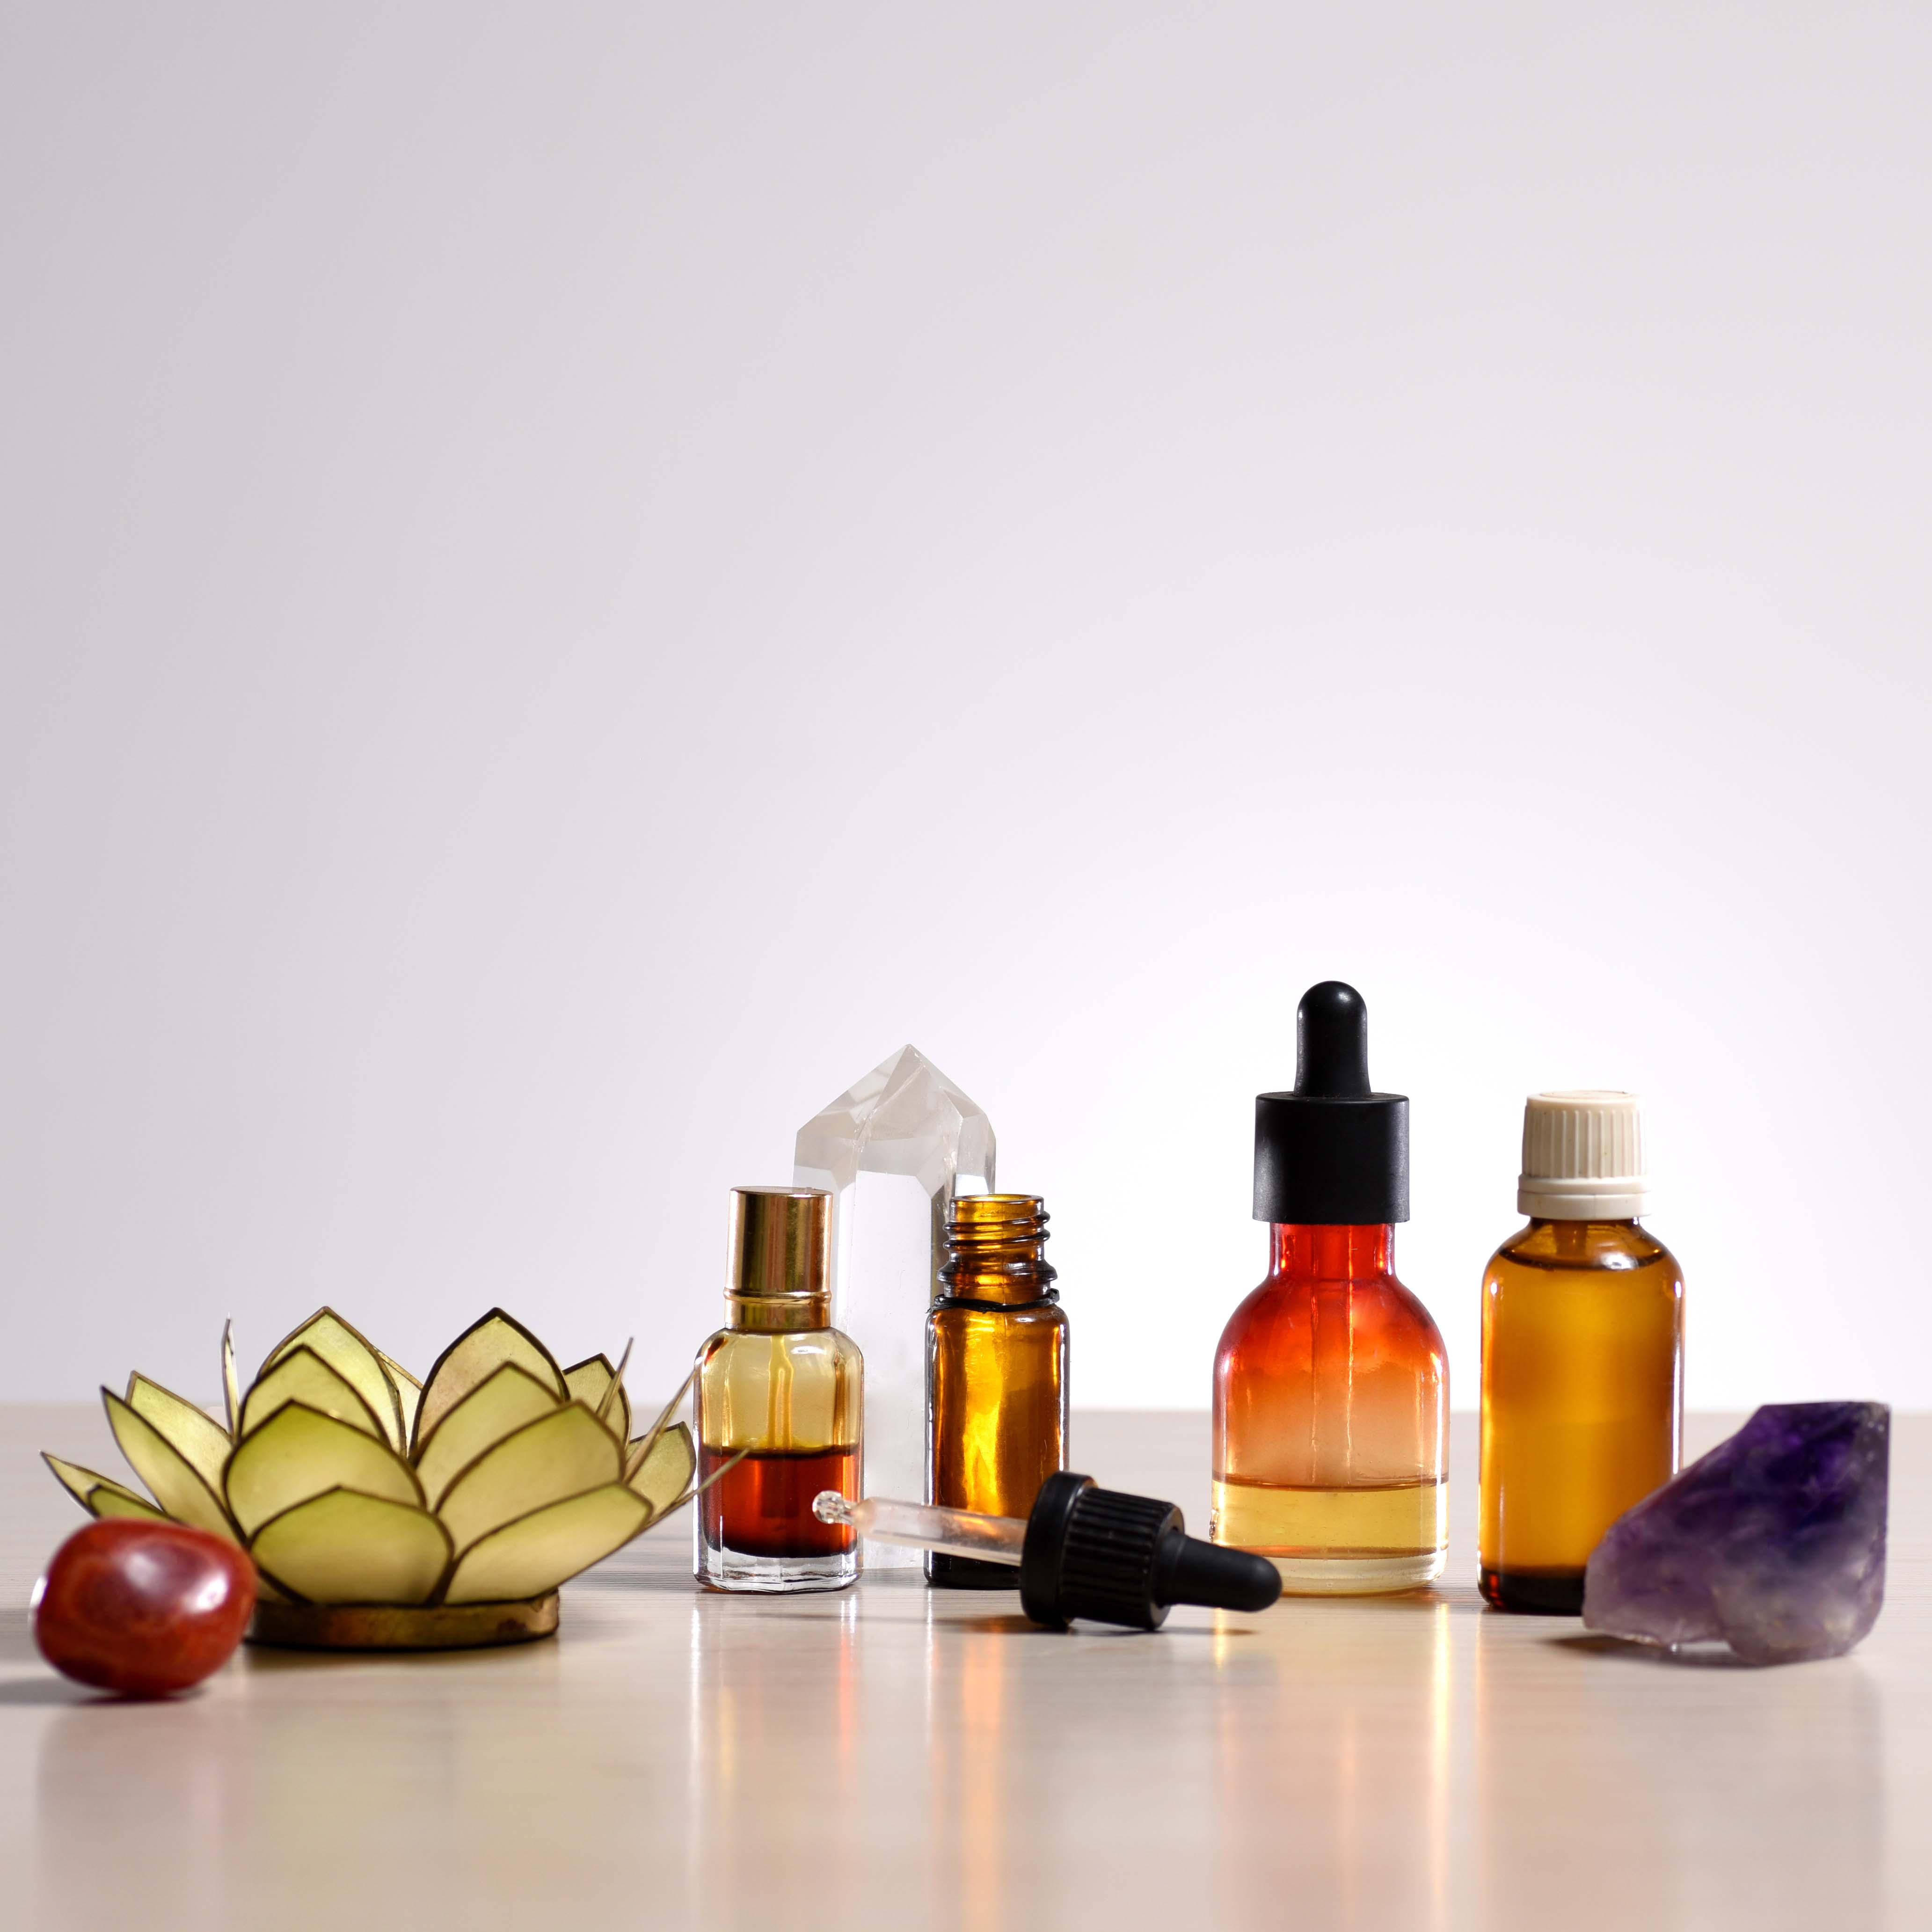 Natural Essential Oils - How to Use Them